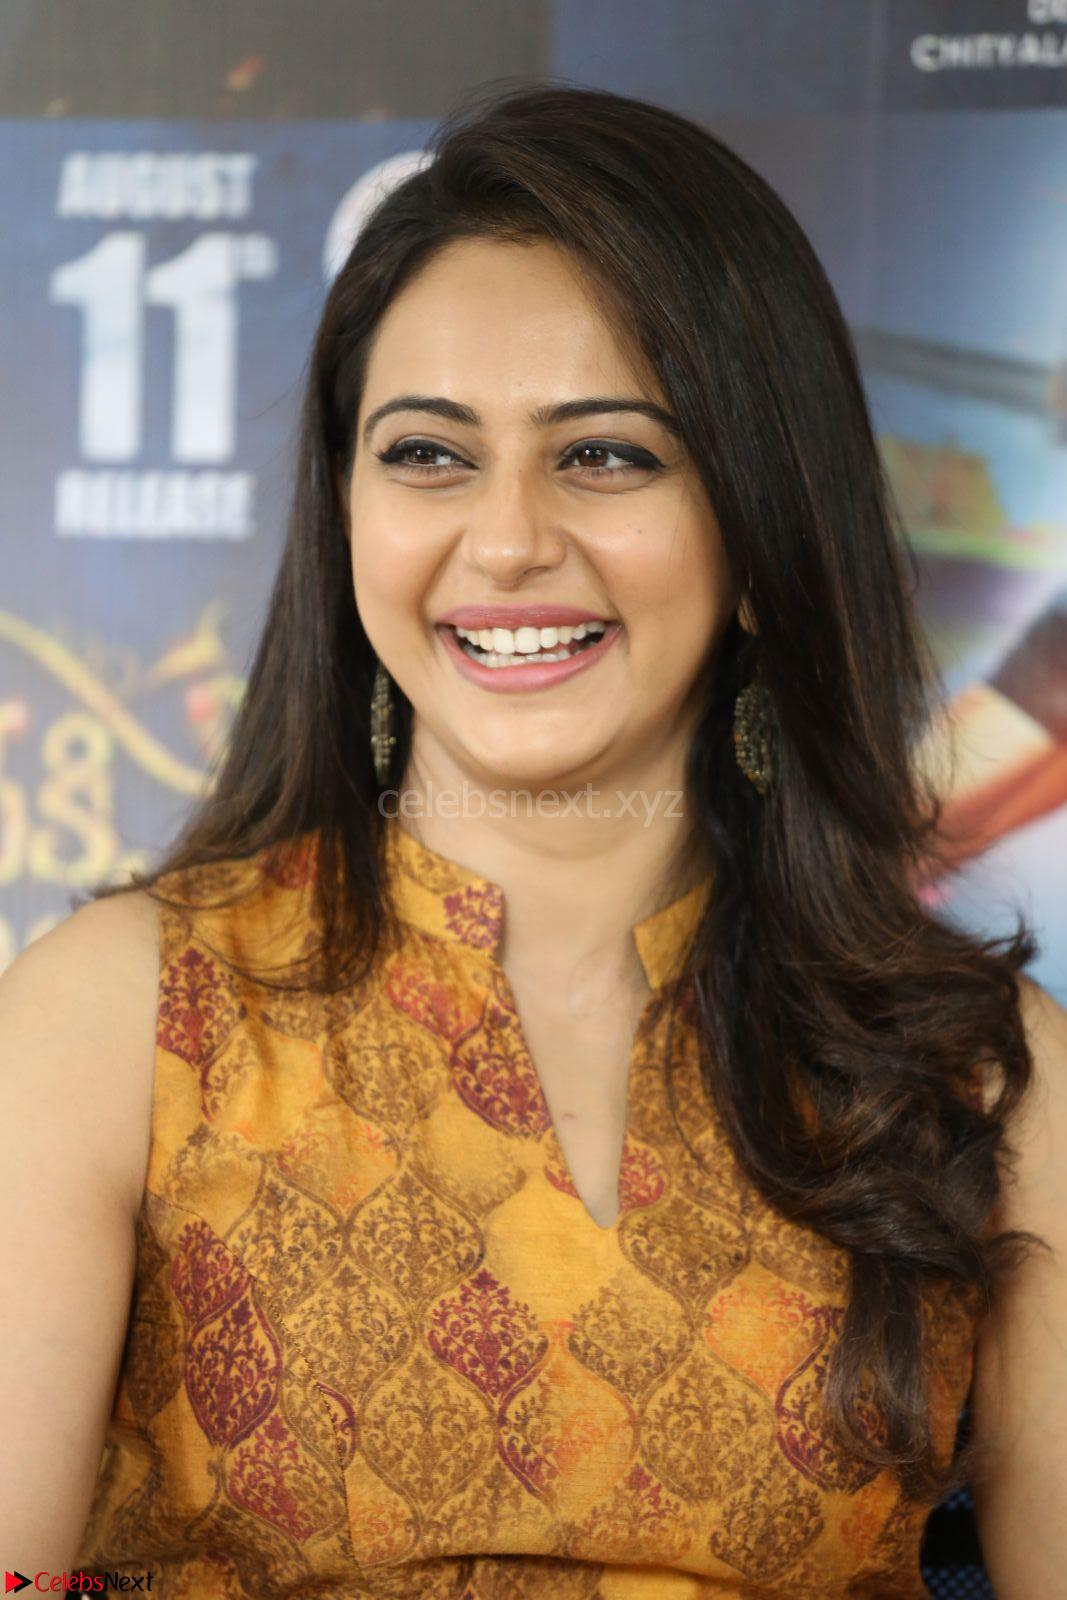 Rakul Preet Singh smiling Beautyin Brown Deep neck Sleeveless Gown at her interview 2.8.17 ~ CelebsNext Exclusive Celebrities Galleries